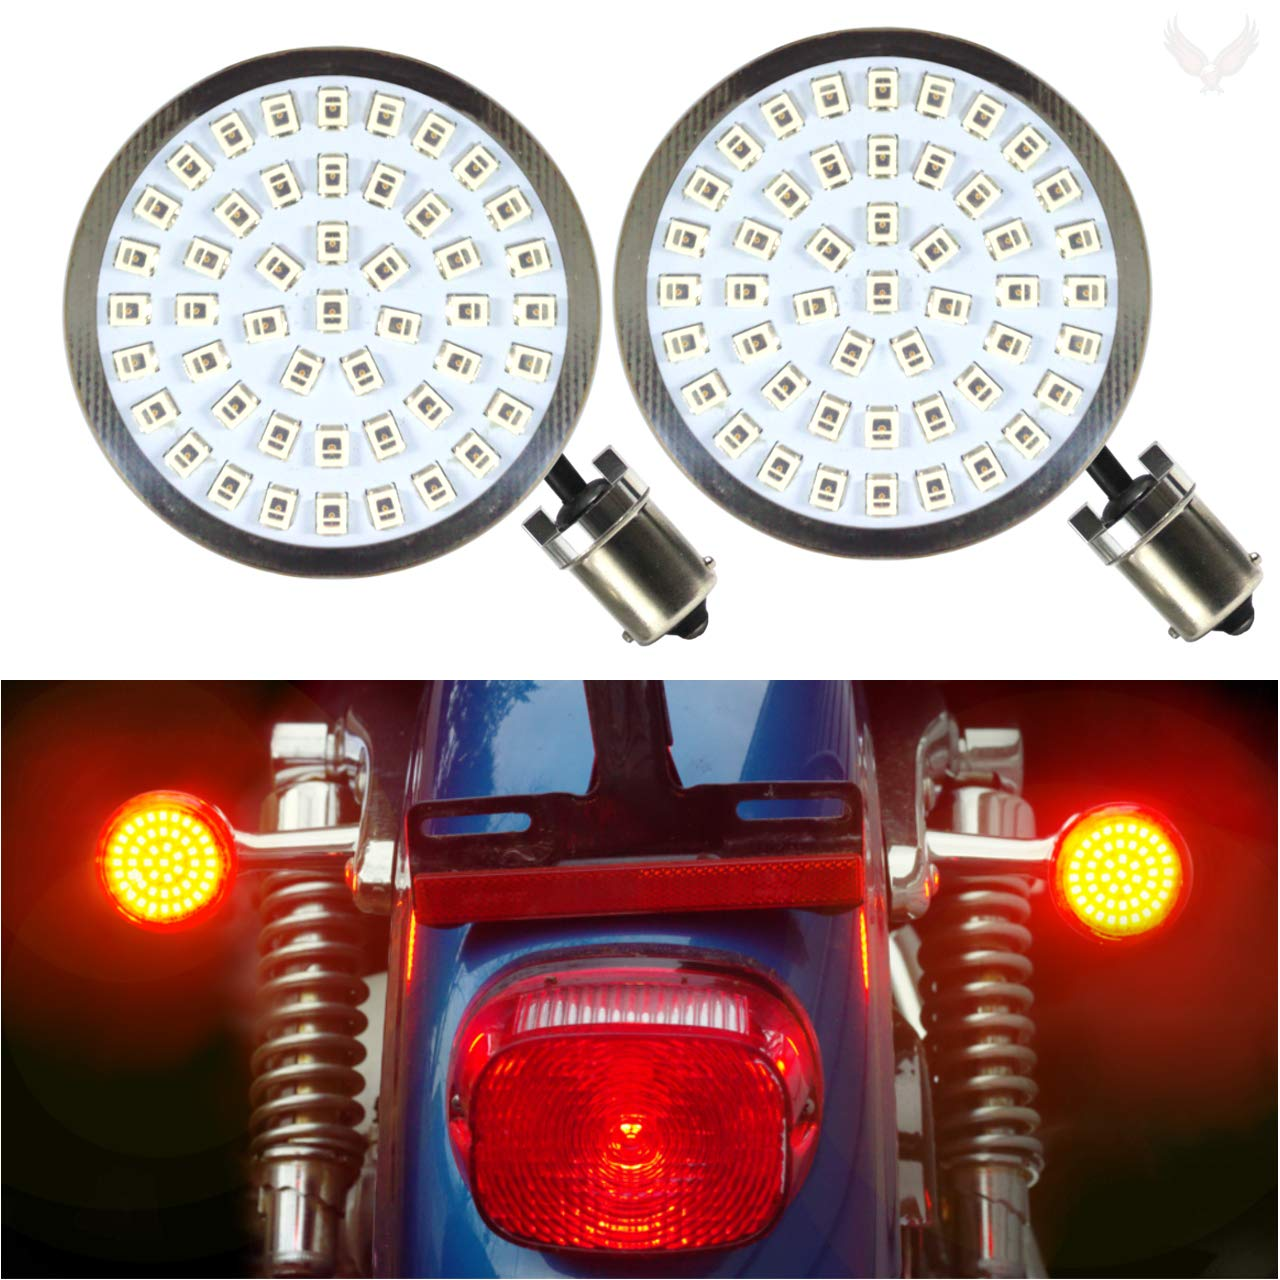 Eagle Lights Generation II Red LED Turn Signals (Rear Turn Signals (1156), No Smoke Lenses) 2 inch bullet style for Harley Davidson by Eagle Lights